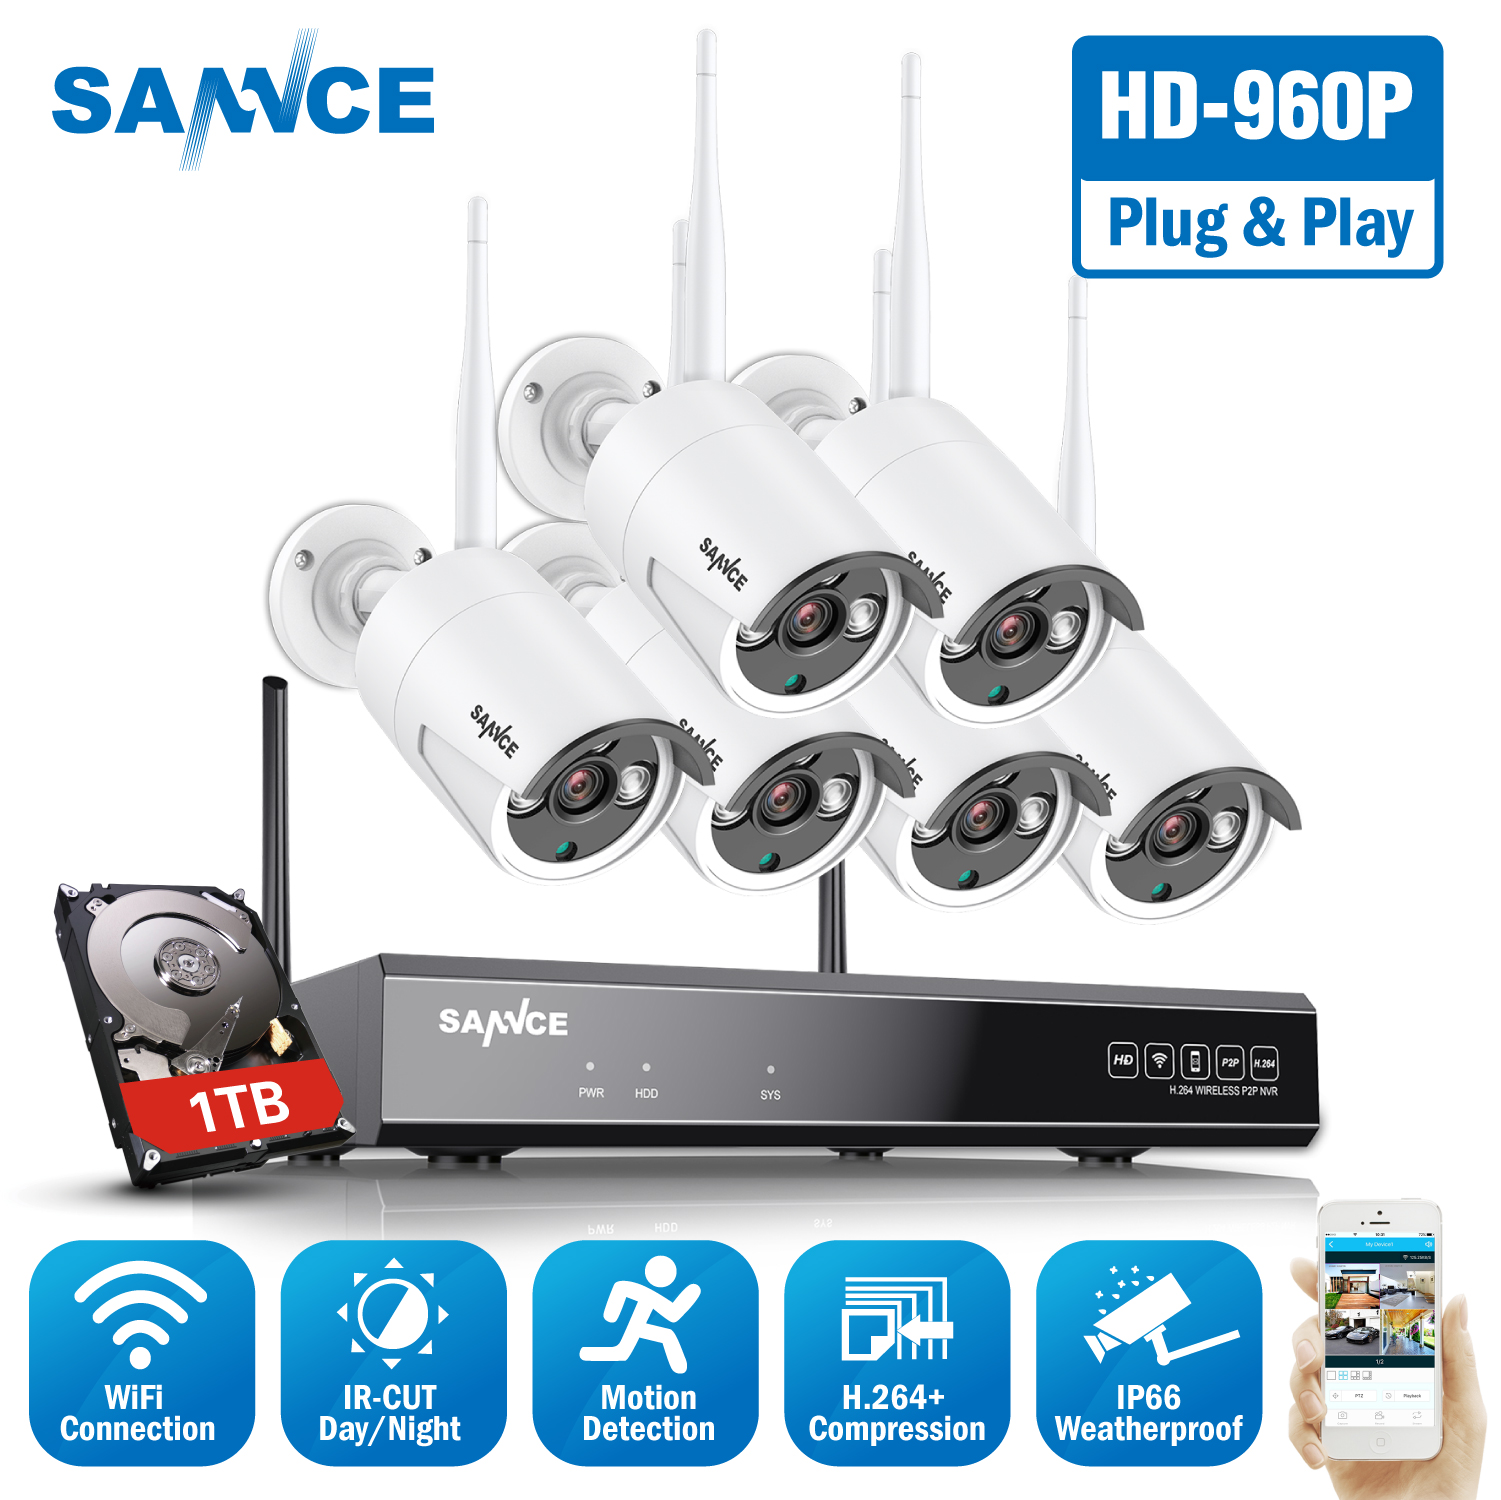 SANNCE 960P 8CH Wireless Security Camera System 6PCS IP66 Weatherproof Indoor Outdoor Wifi Cameras Plug-and-Play Wi-fi CCTV Kit